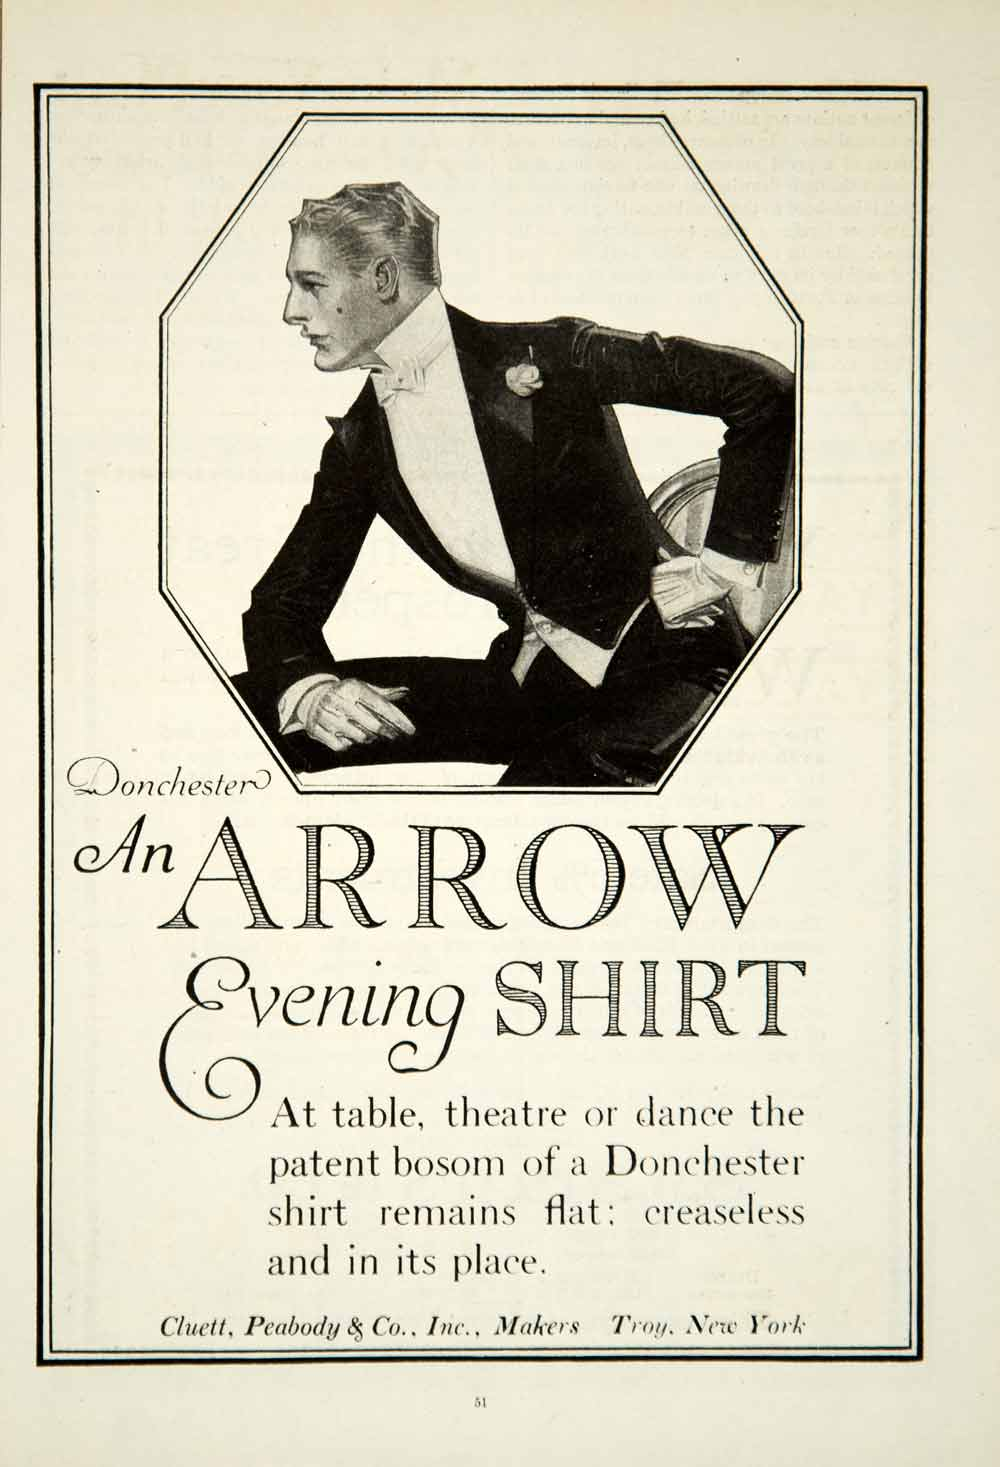 1919 Ad Cluett Peabody Donchester Arrow Shirt Clothing Art Deco Fashion YSC1